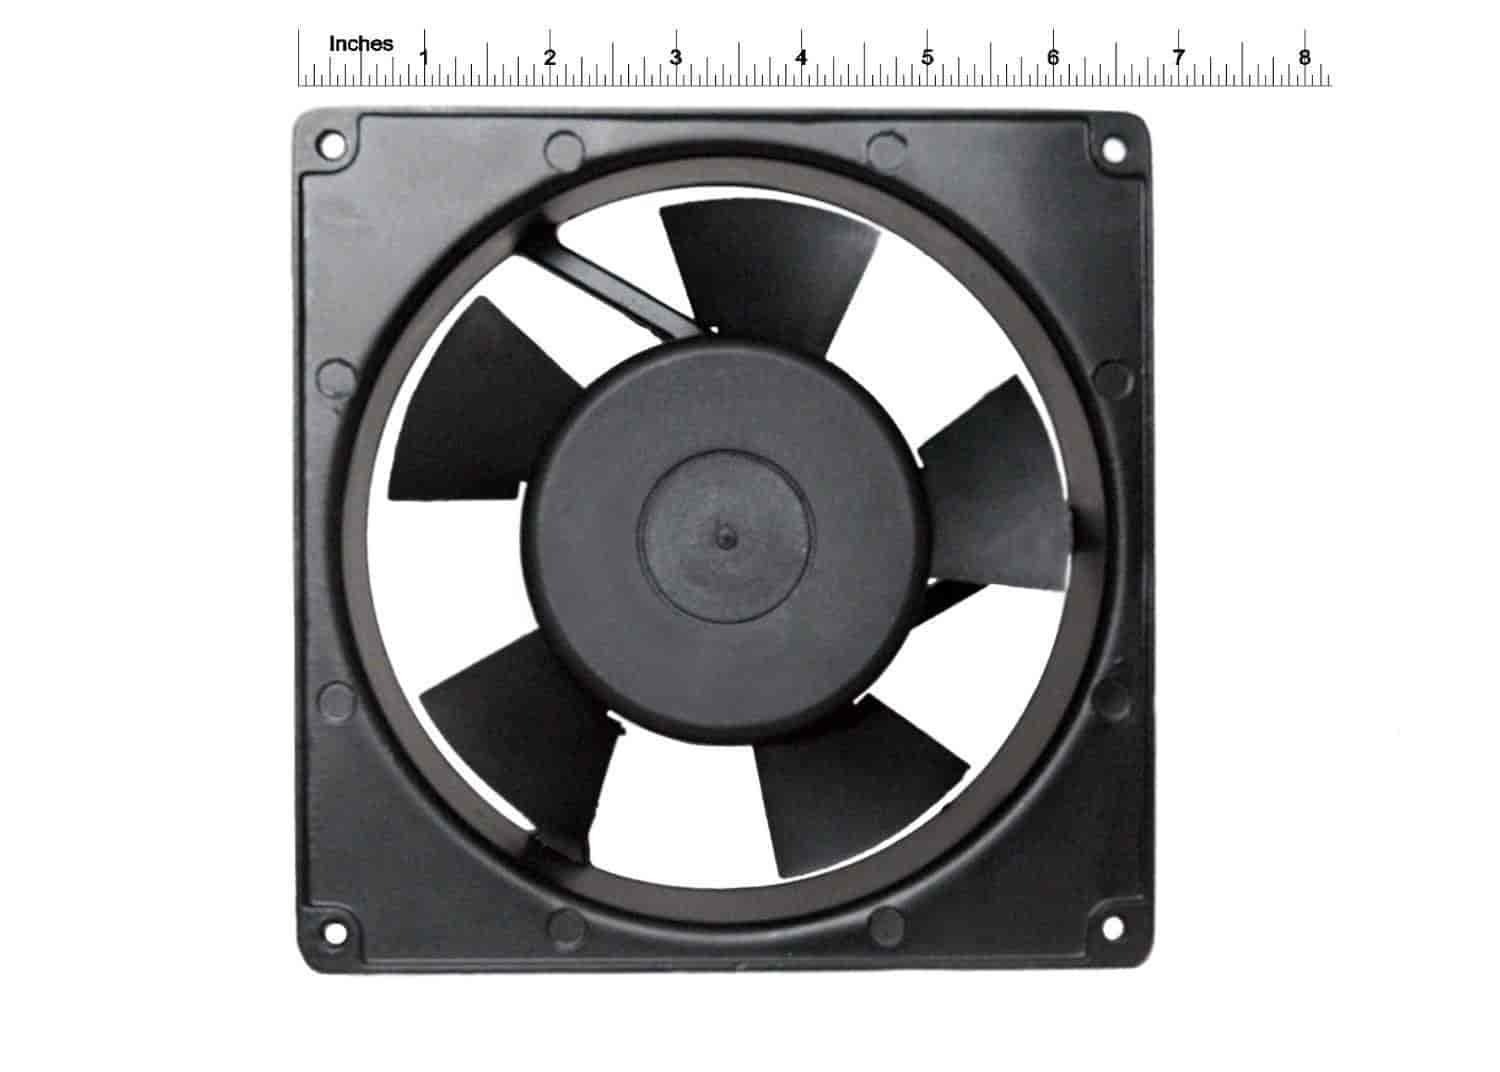 SONYA-SON0009-Axial-Cooling-Blower-Rotary-Exhaust-Fan-Black